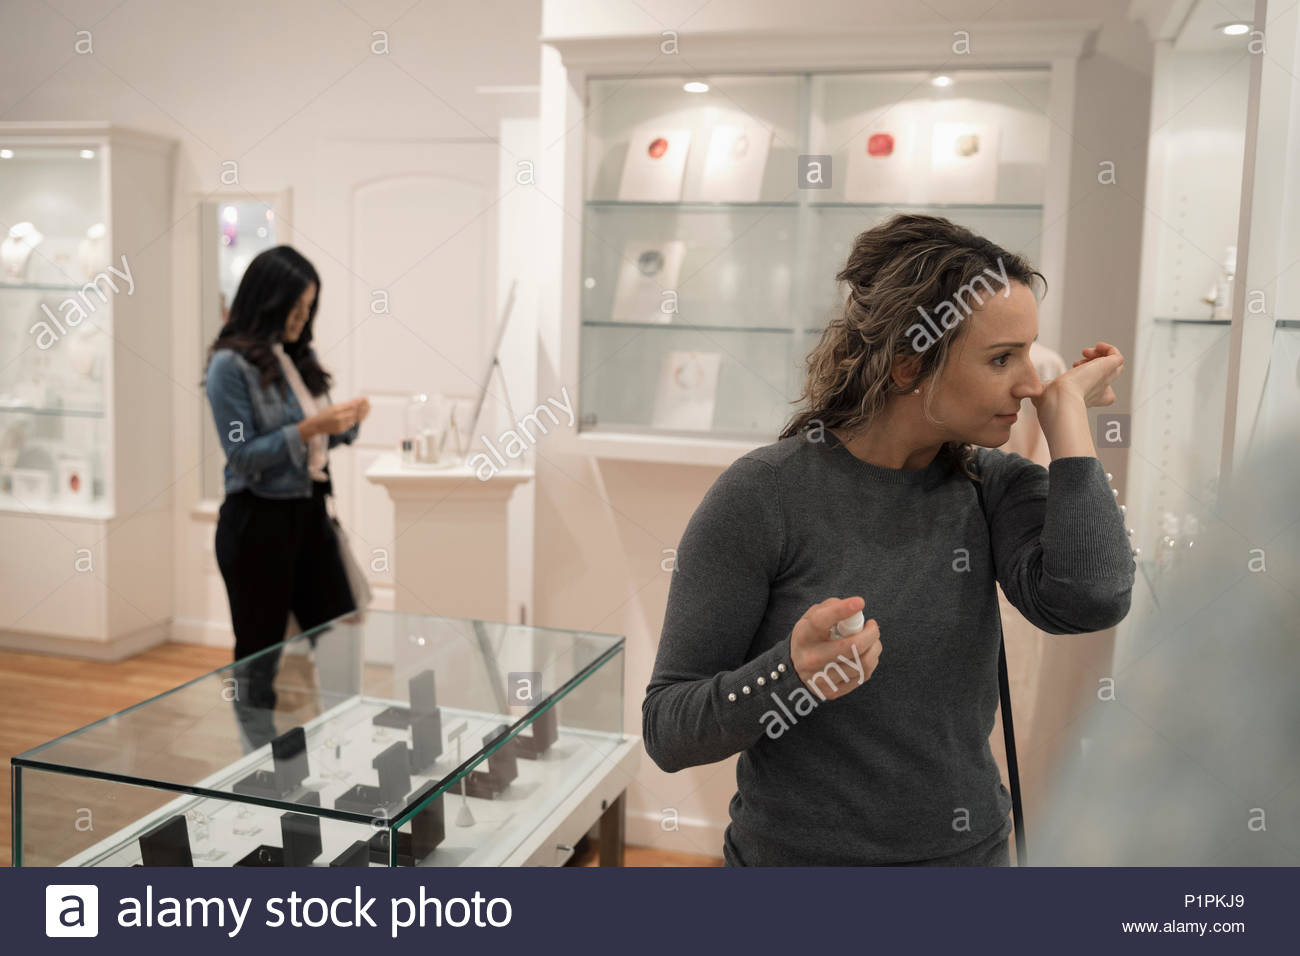 Woman trying on perfume at boutique - Stock Image